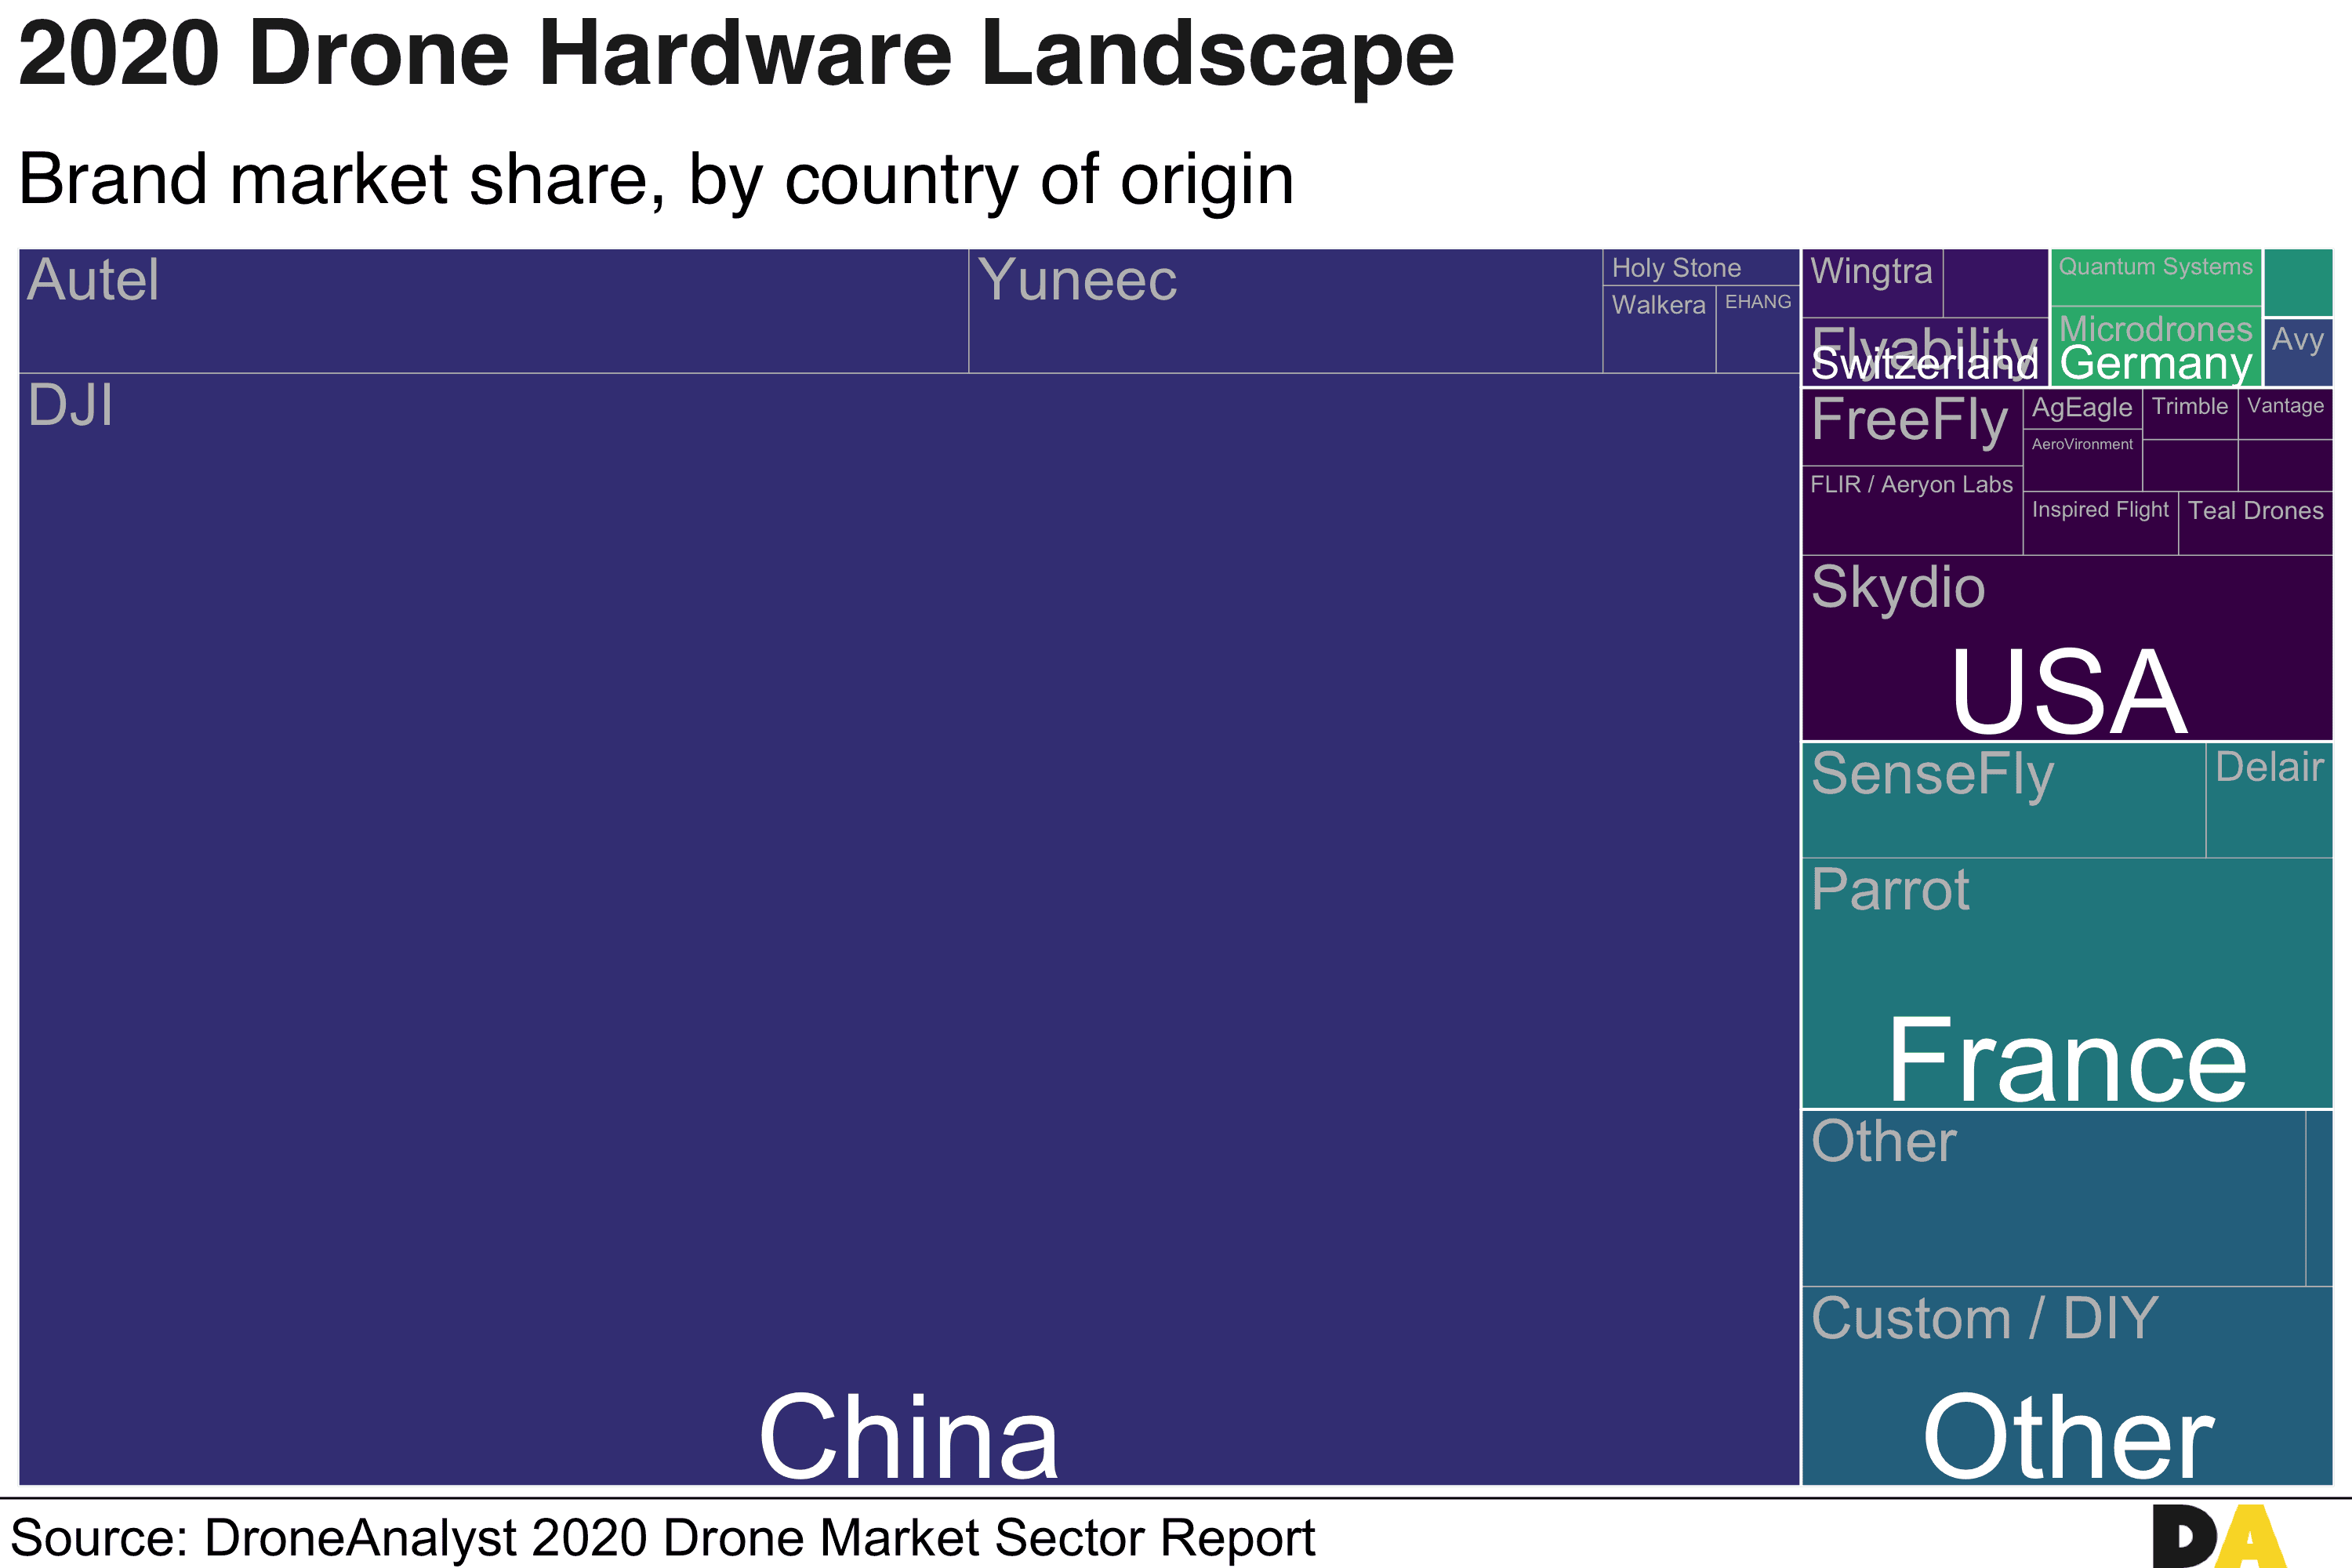 2020 Drone Hardware Landscape, mapping market share by country of origin.